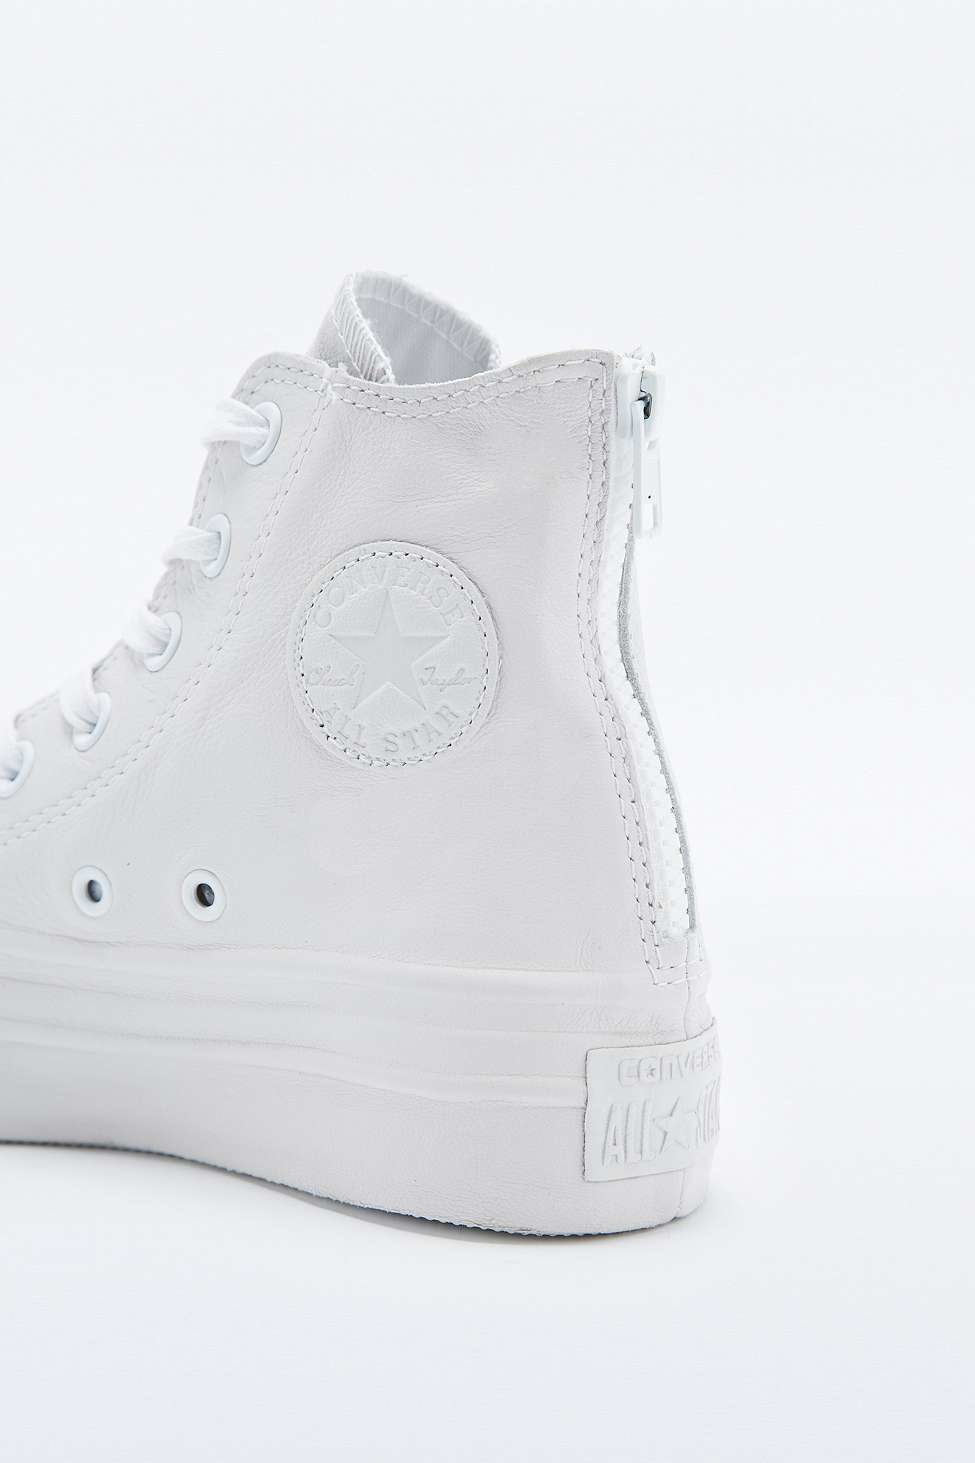 277d75f2c94e Converse Chuck Taylor Black Leather Platform High-top Trainers in ...